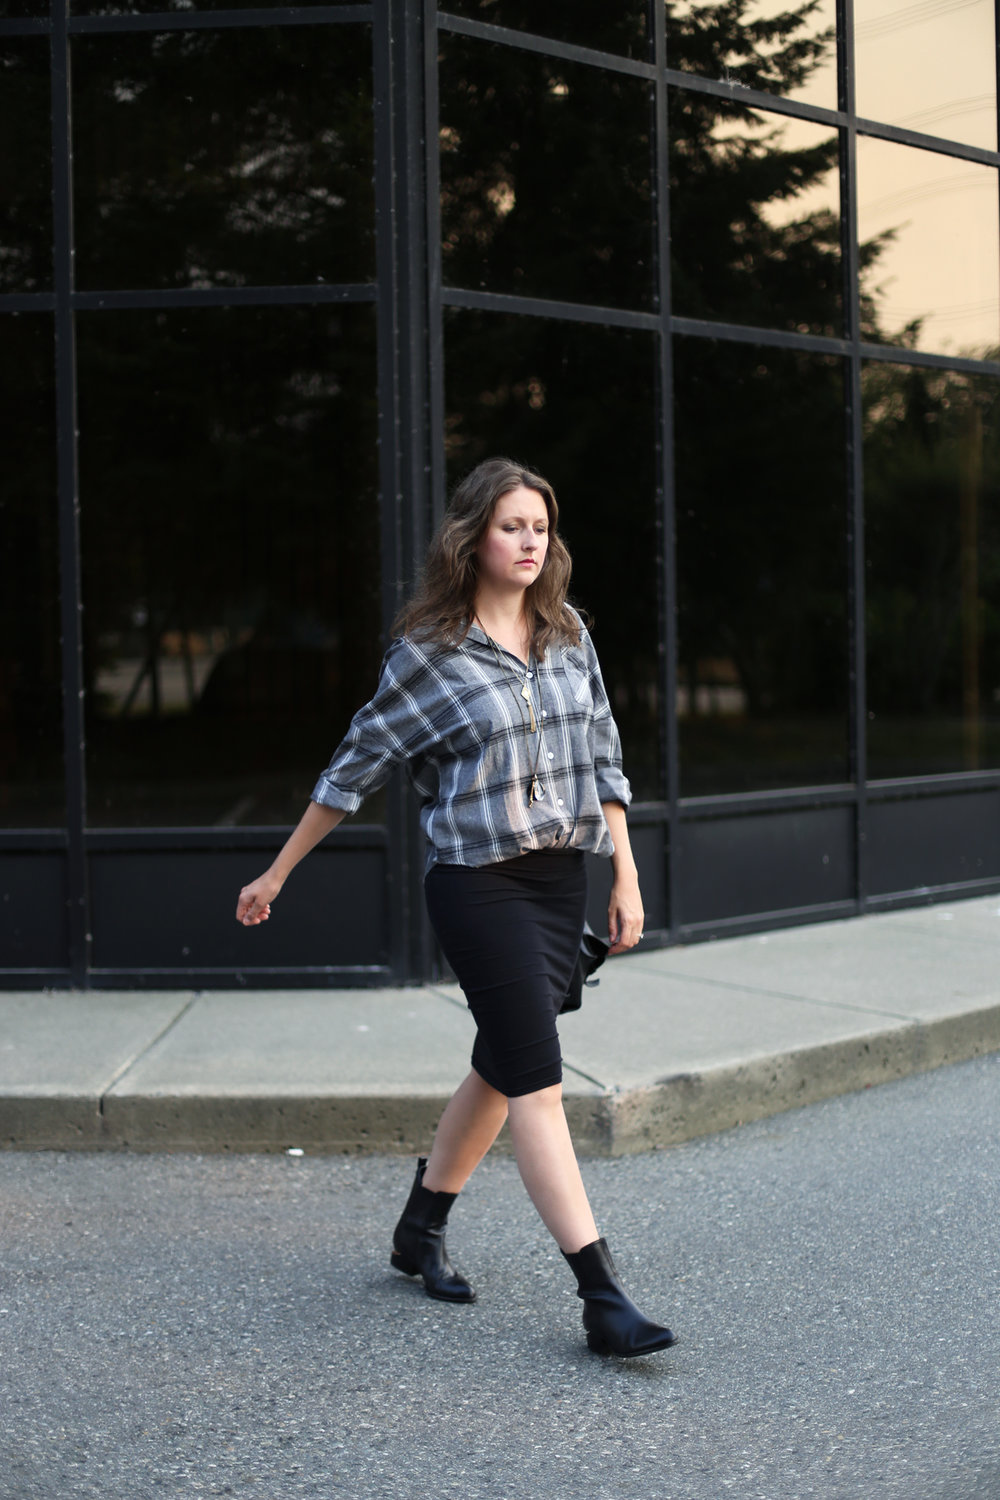 How to style an oversized plaid shirt with a skirt.